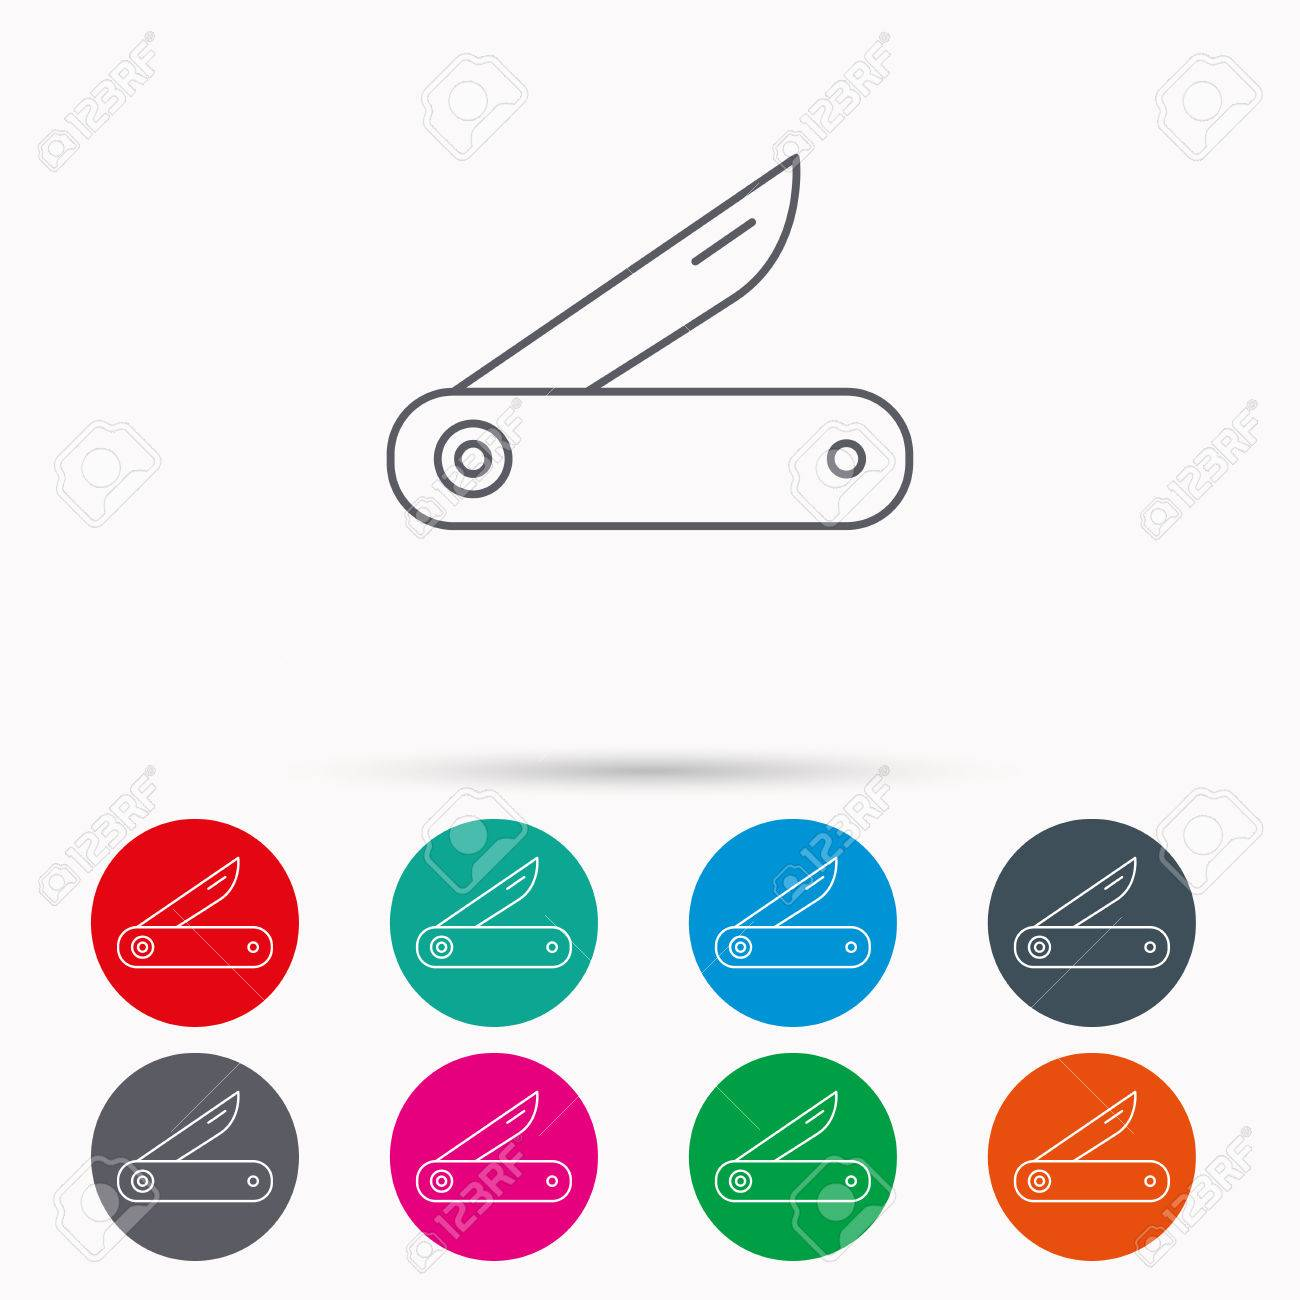 f9df59a92d Banco de Imagens - Multitool knife icon. Multifunction tool sign. Hiking  equipment symbol. Linear icons in circles on white background.